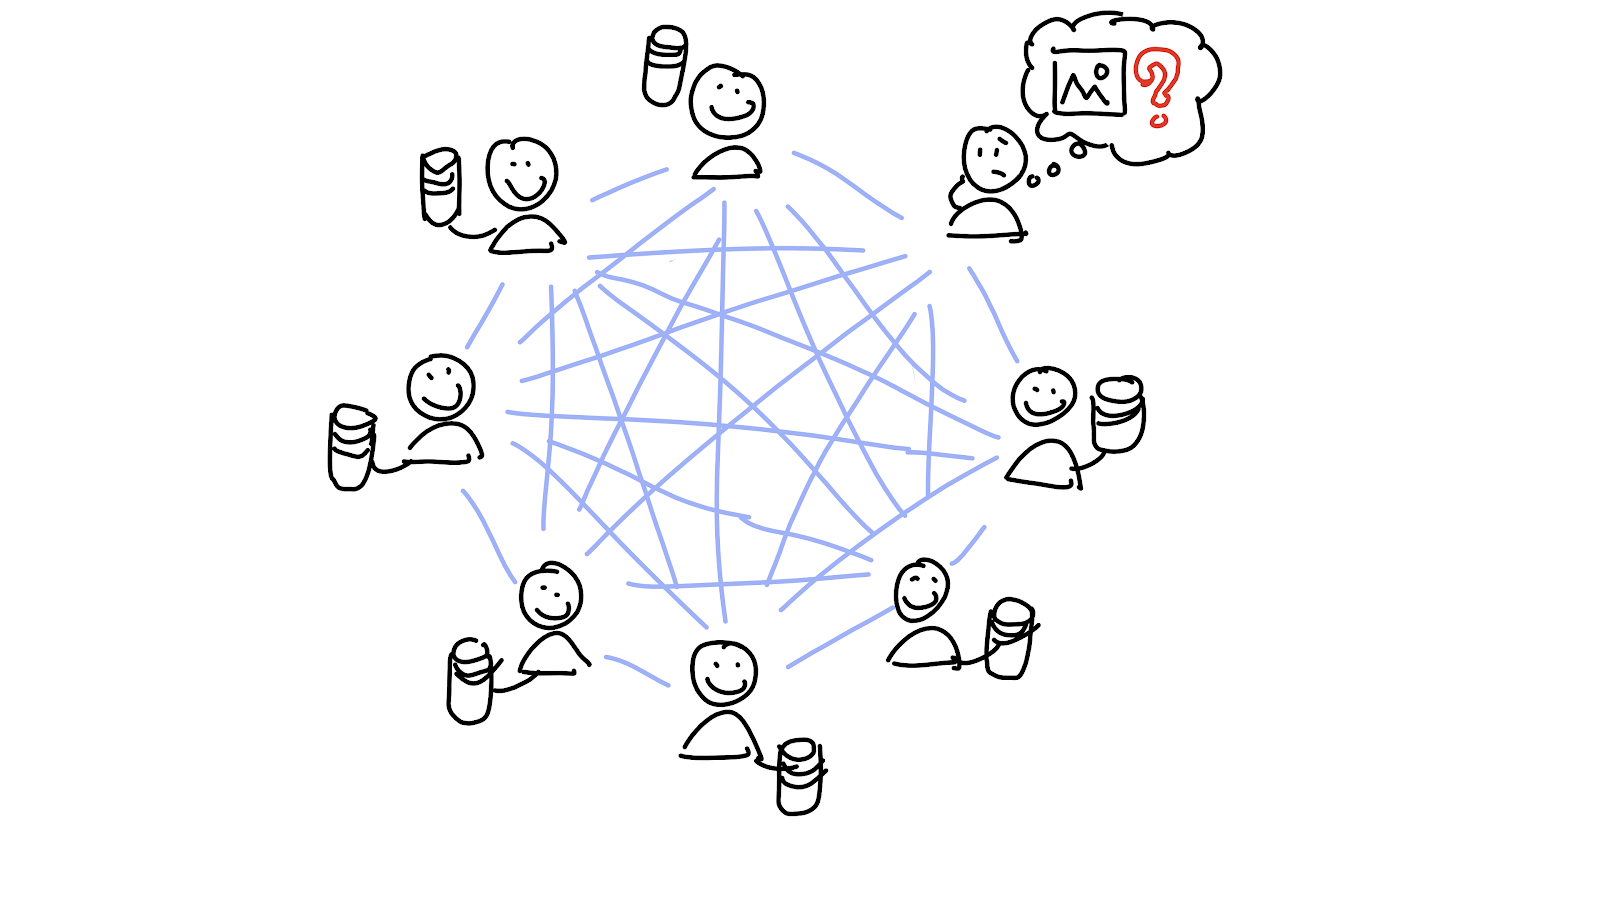 Eight people, all storing some data and connected directly to each other. One of them wants to retrieve a piece of data but doesn't know who to talk to.